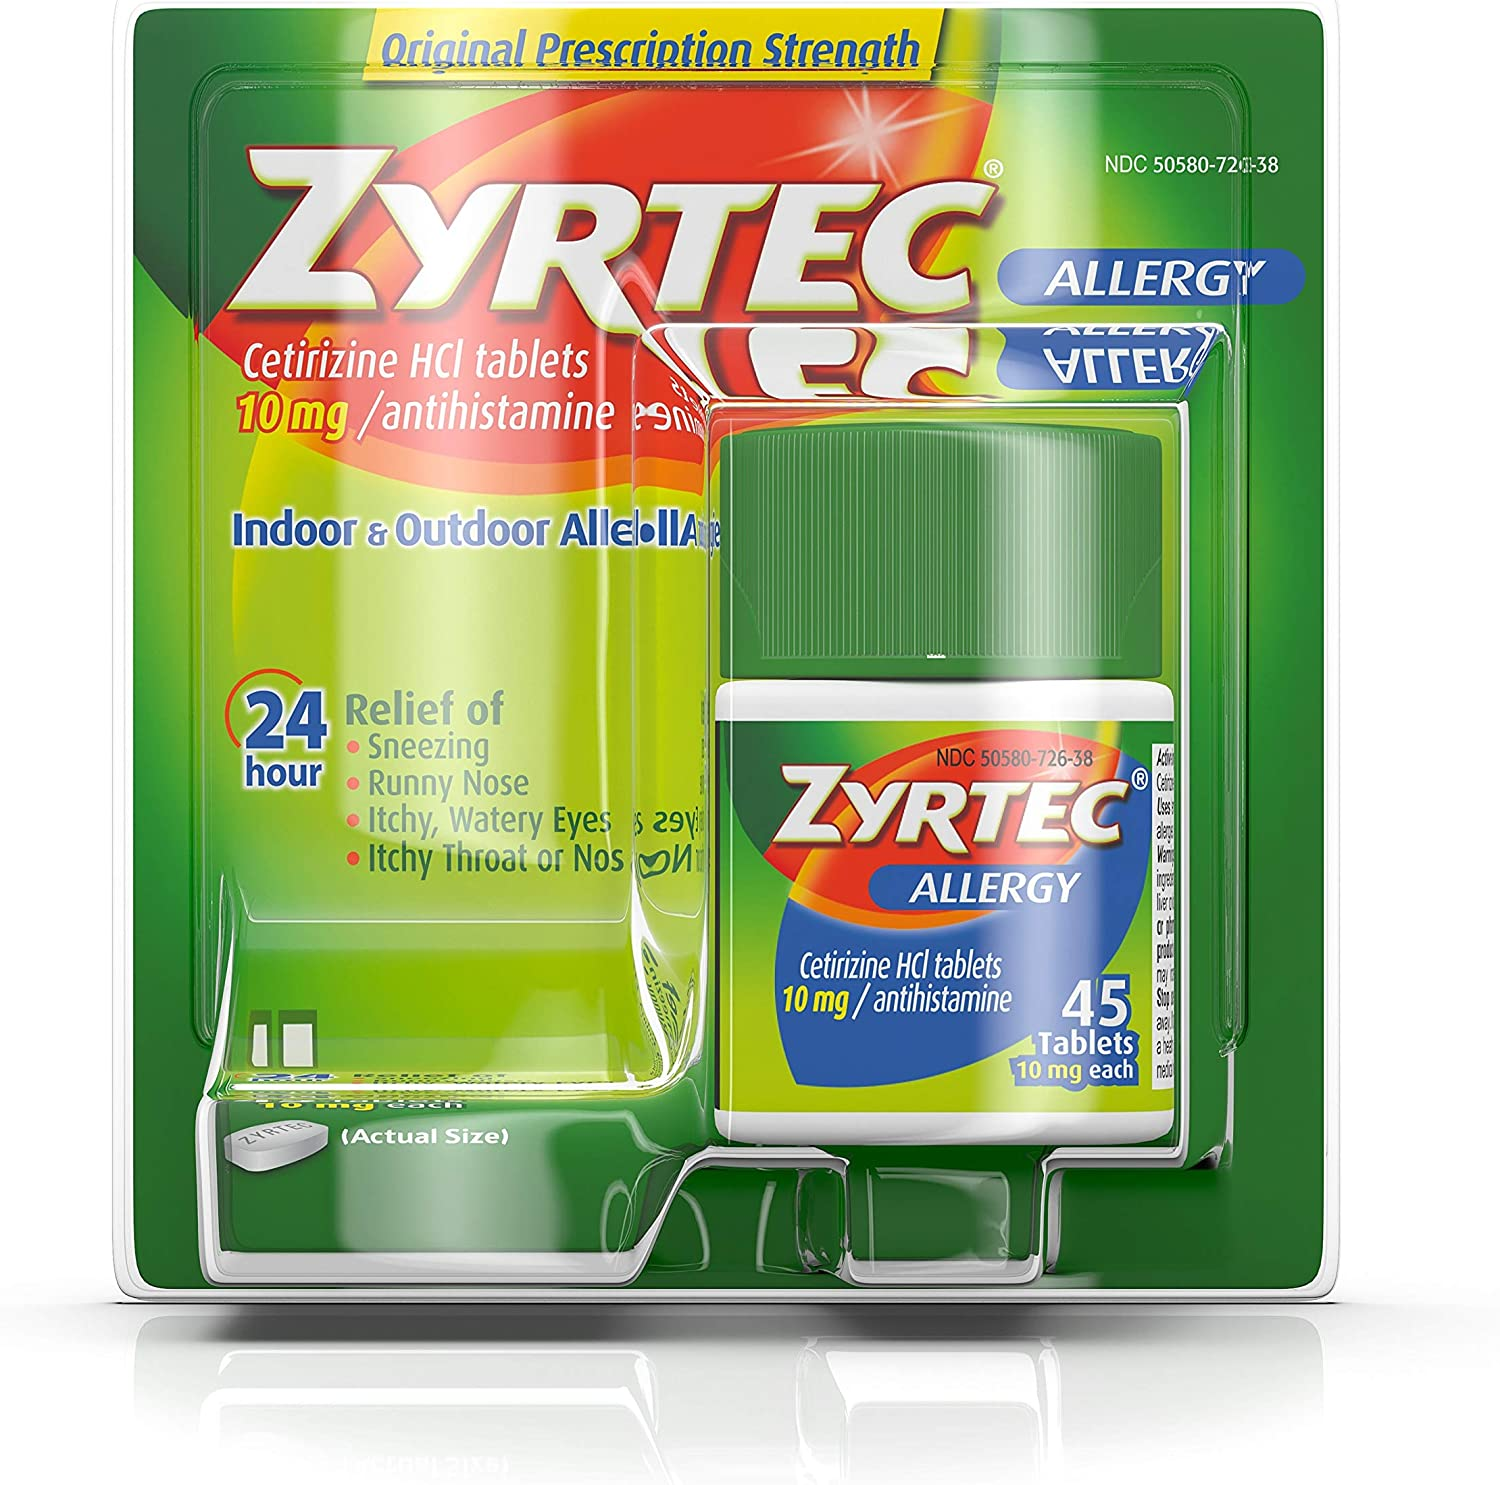 Zyrtec 24 Hour Allergy Relief Tablets, 10 mg Cetirizine HCl Antihistamine Allergy Medicine, 45 ct: Health & Personal Care